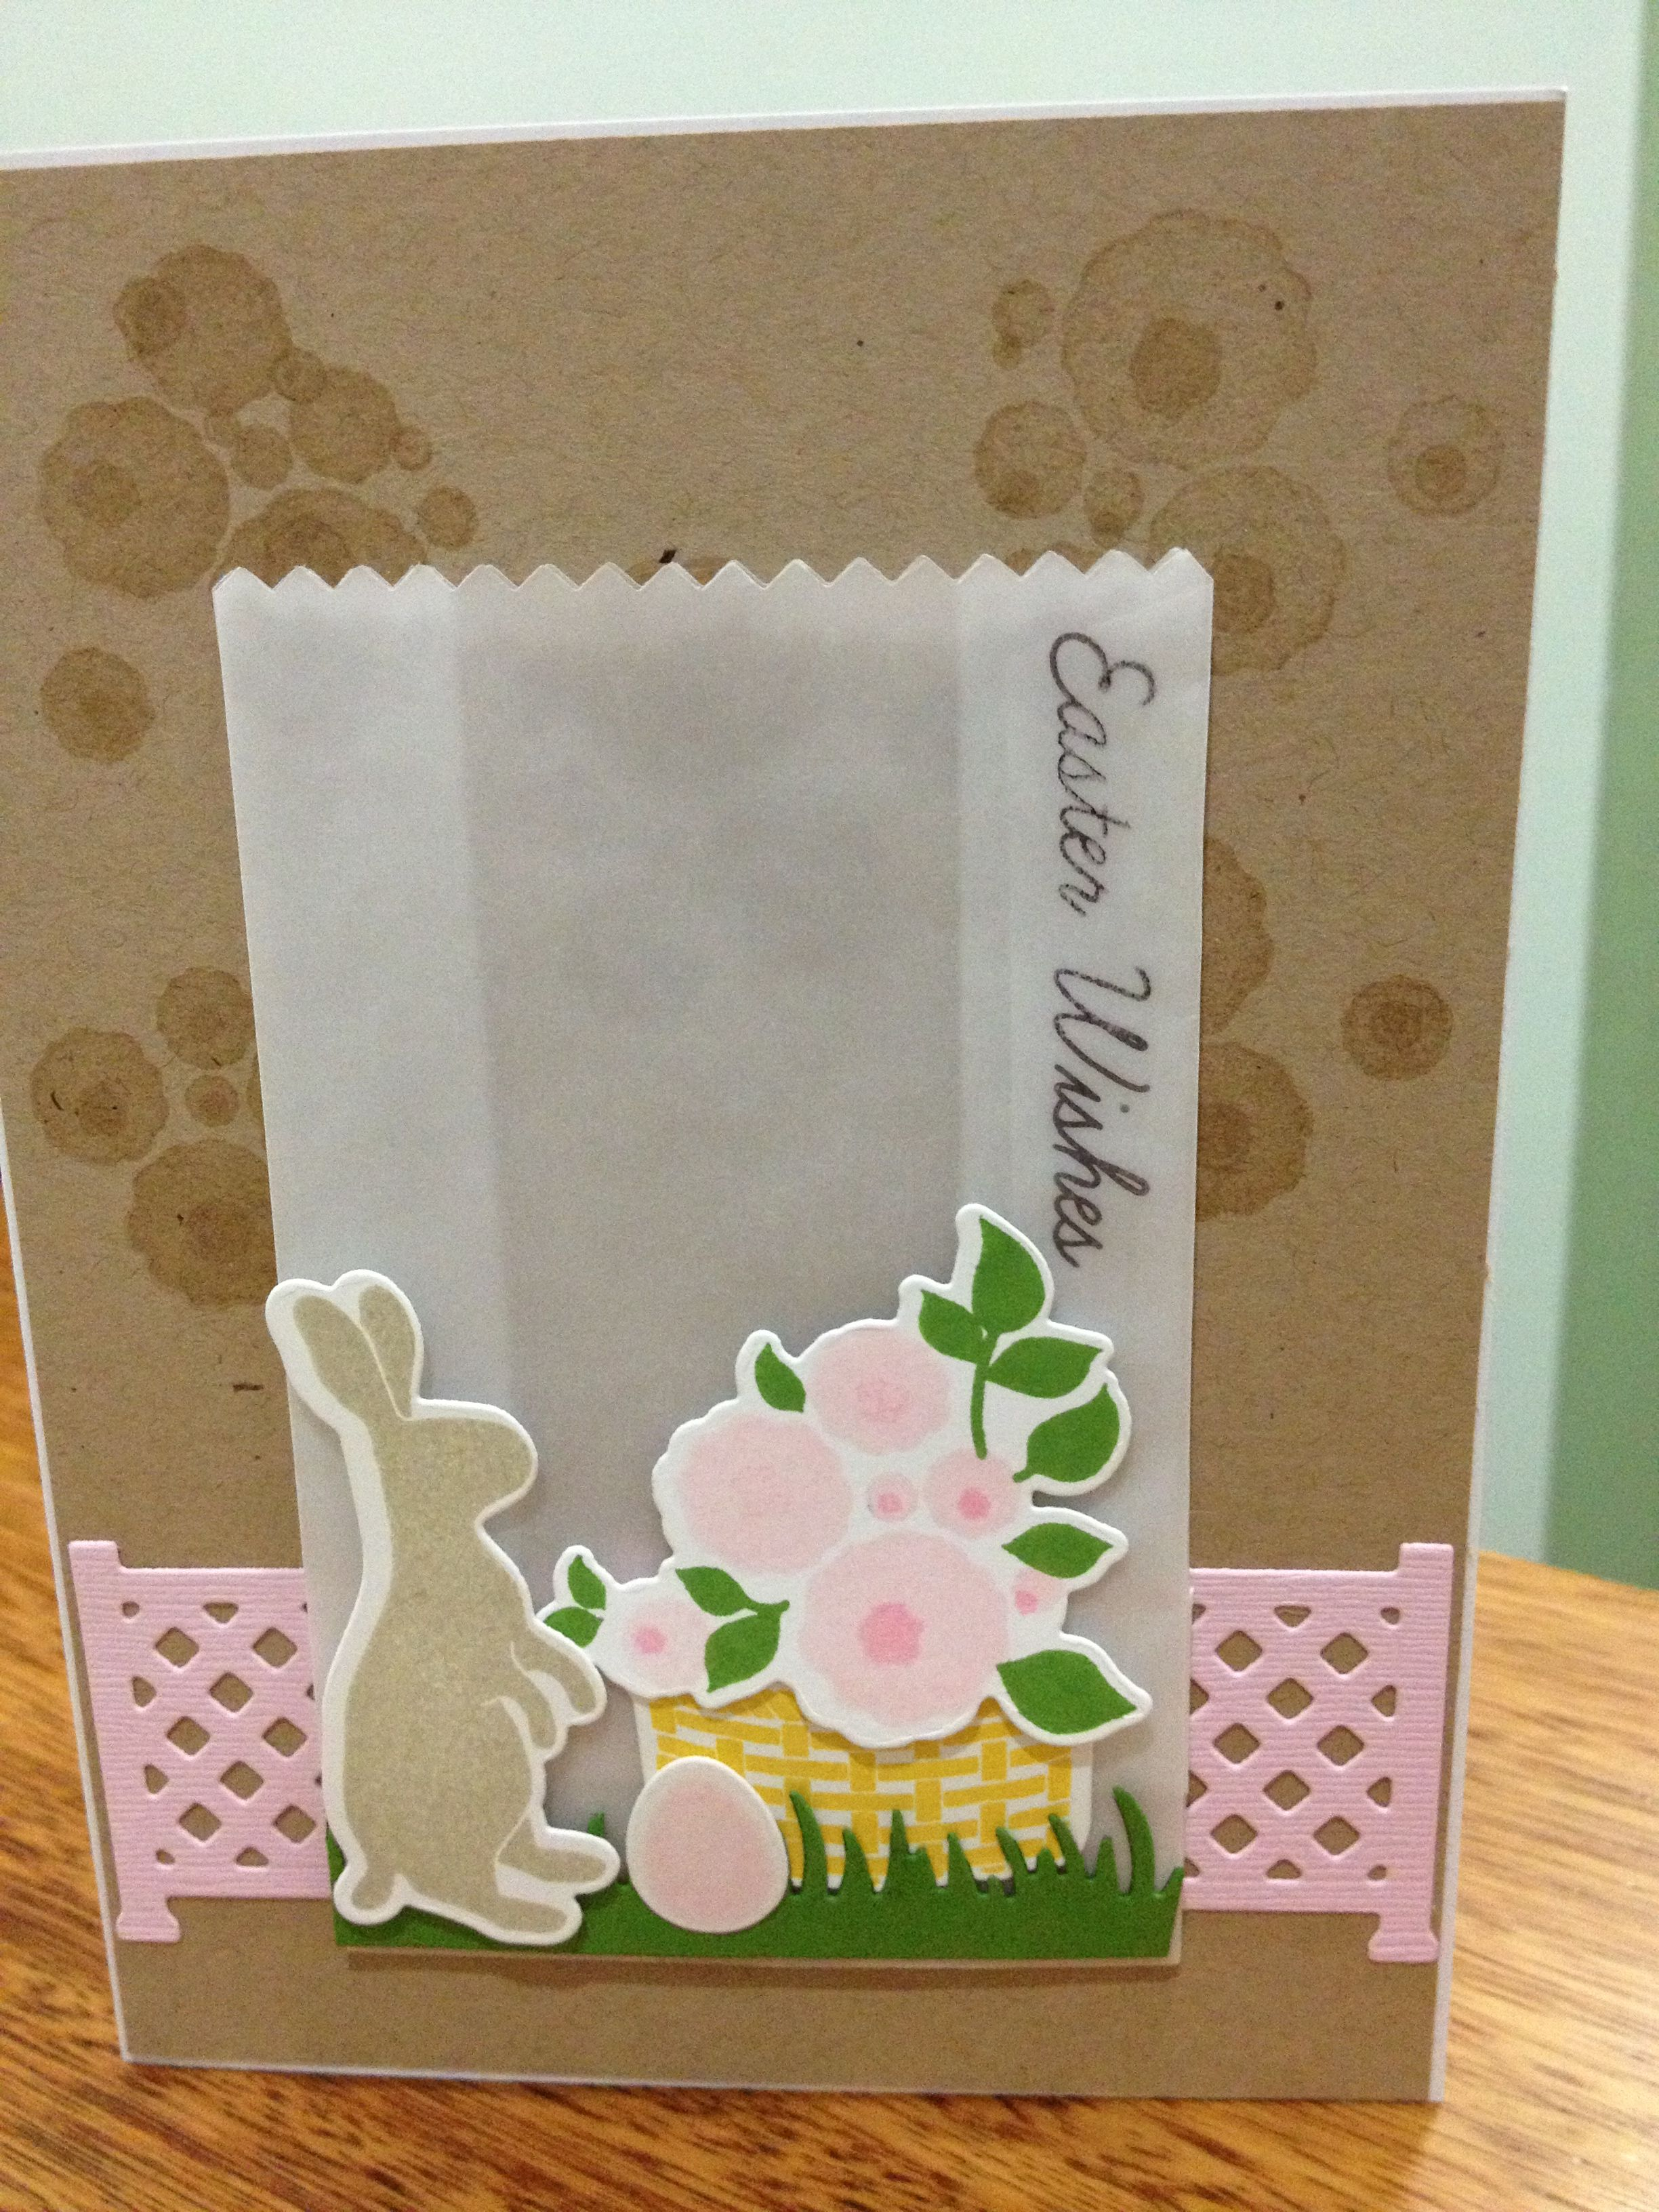 Mft Ljd Easter Bunny Cards Pinterest Easter Bunny Bunny And